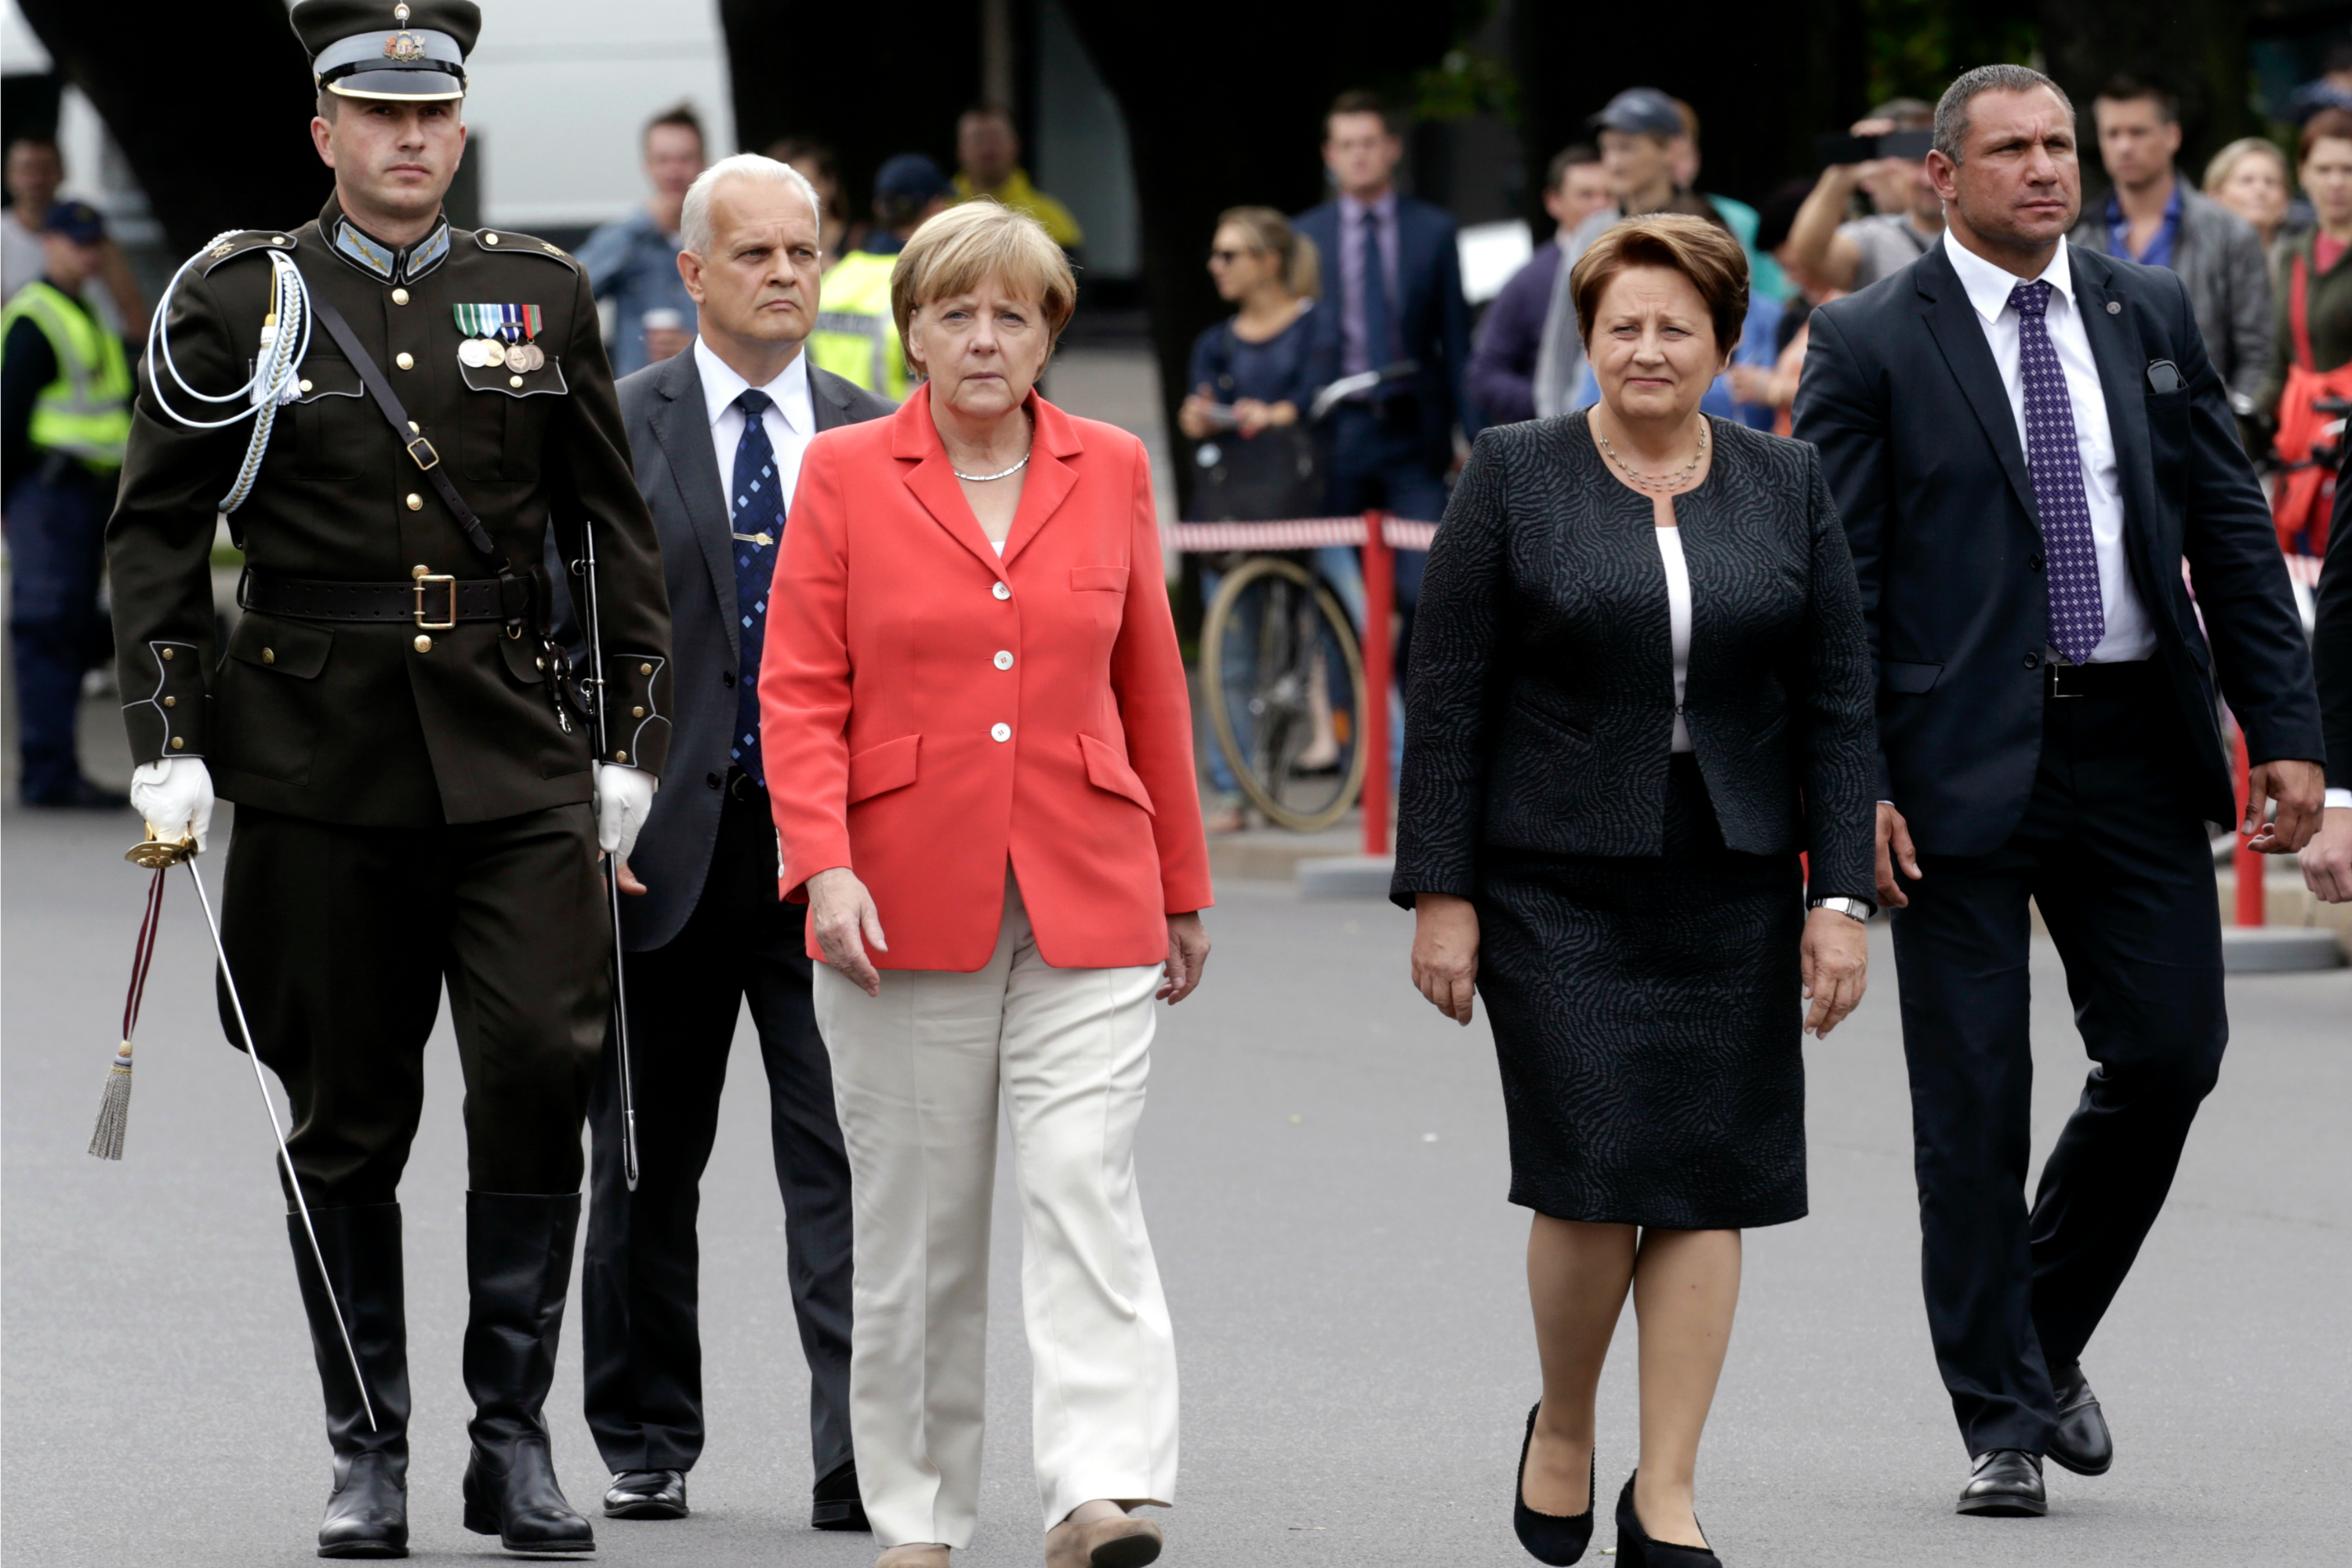 Latvia's Prime Minister Laimdota Straujuma and Germany's Chancellor Angela Merkel arrive to attend a wreath-laying ceremony in Riga, 18 August 2014. REUTERS